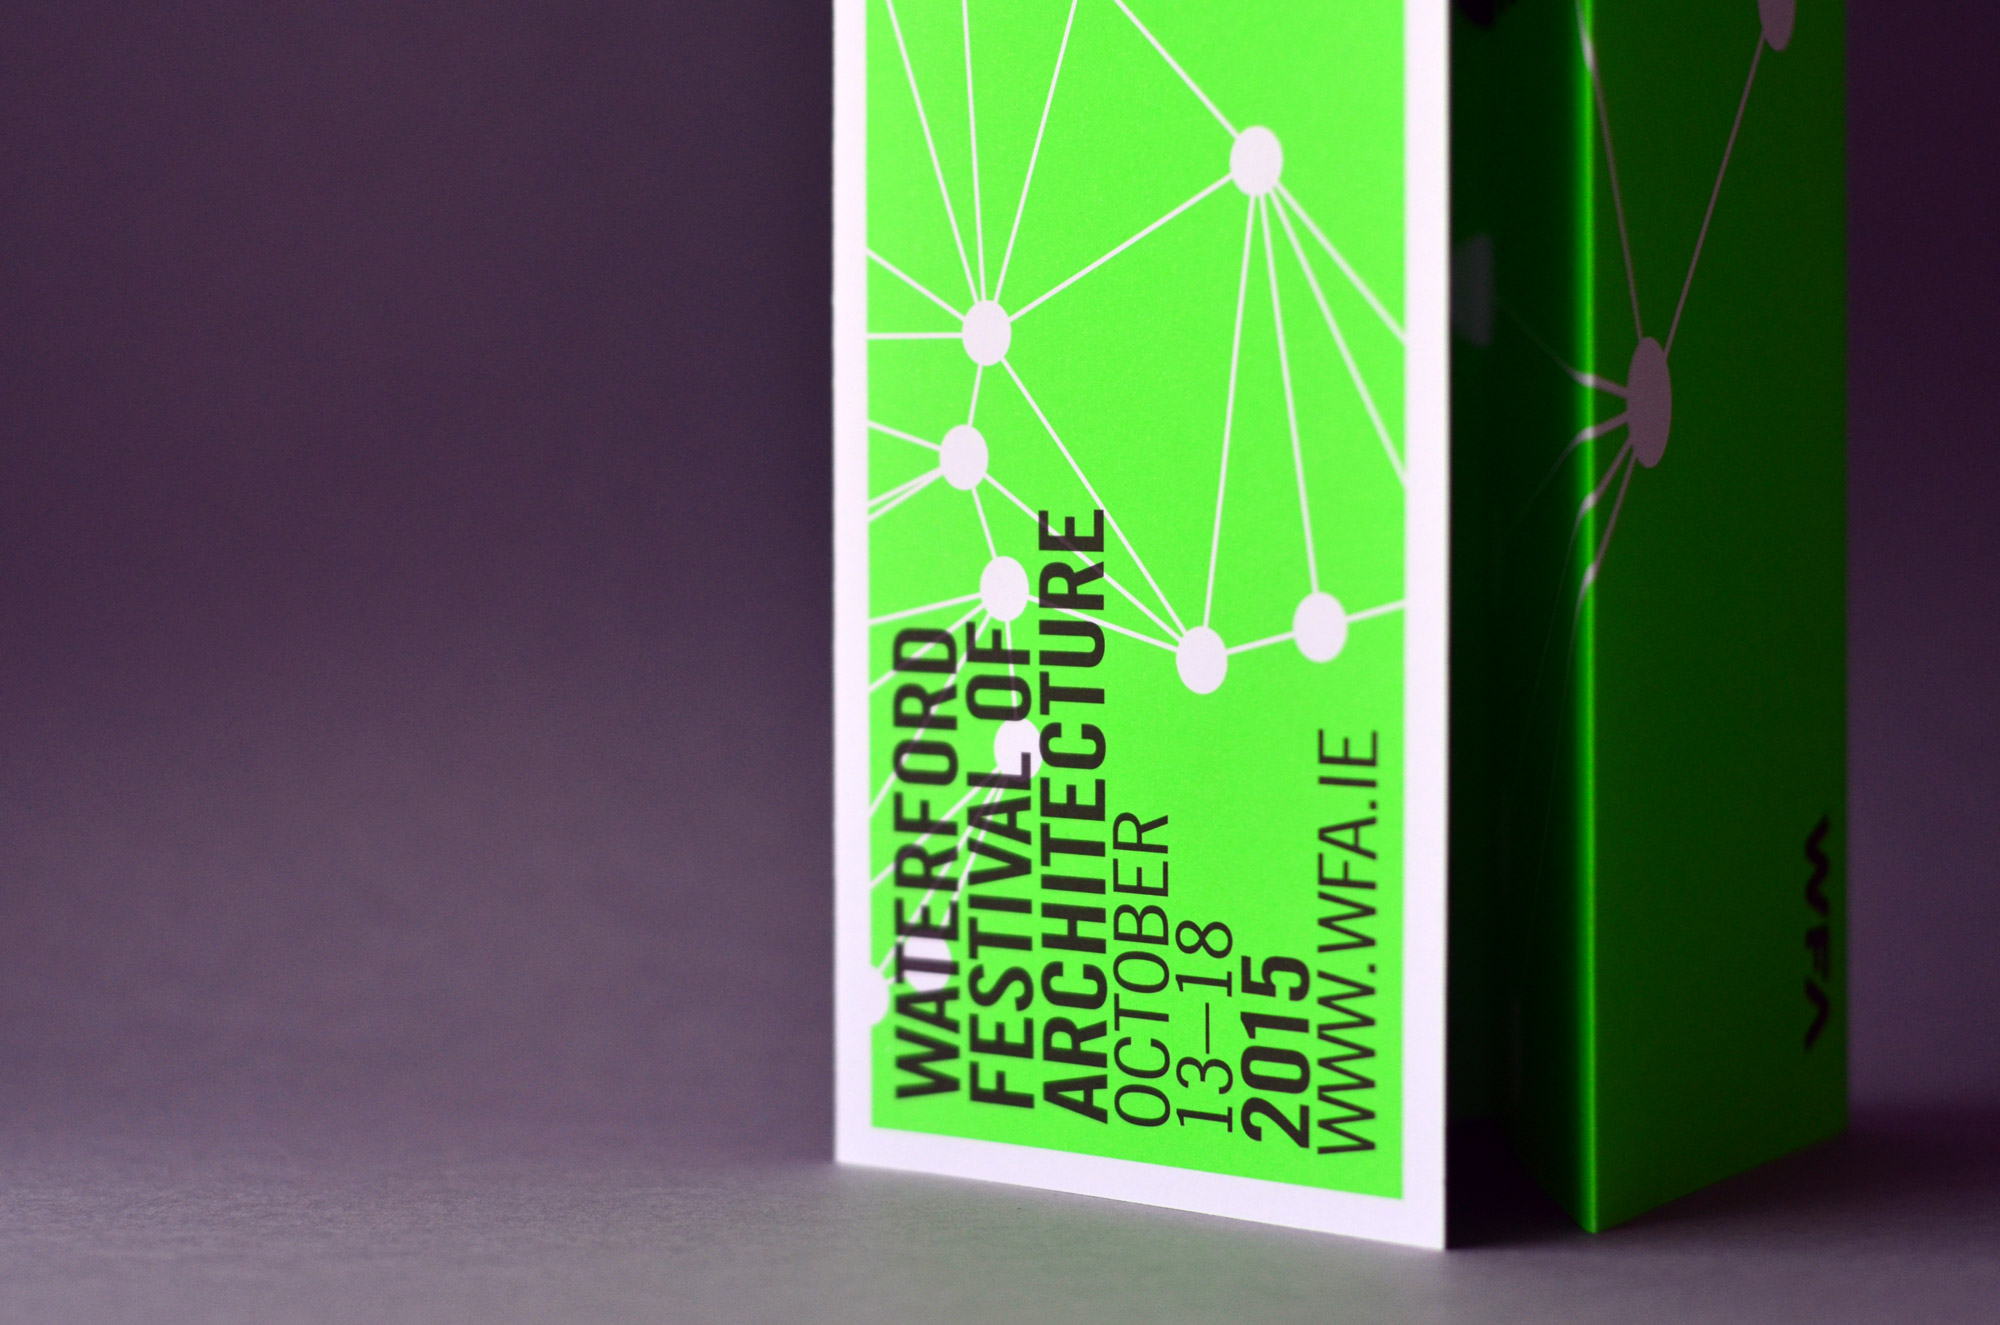 Cover image: WFA 2015 - Identity and Collateral